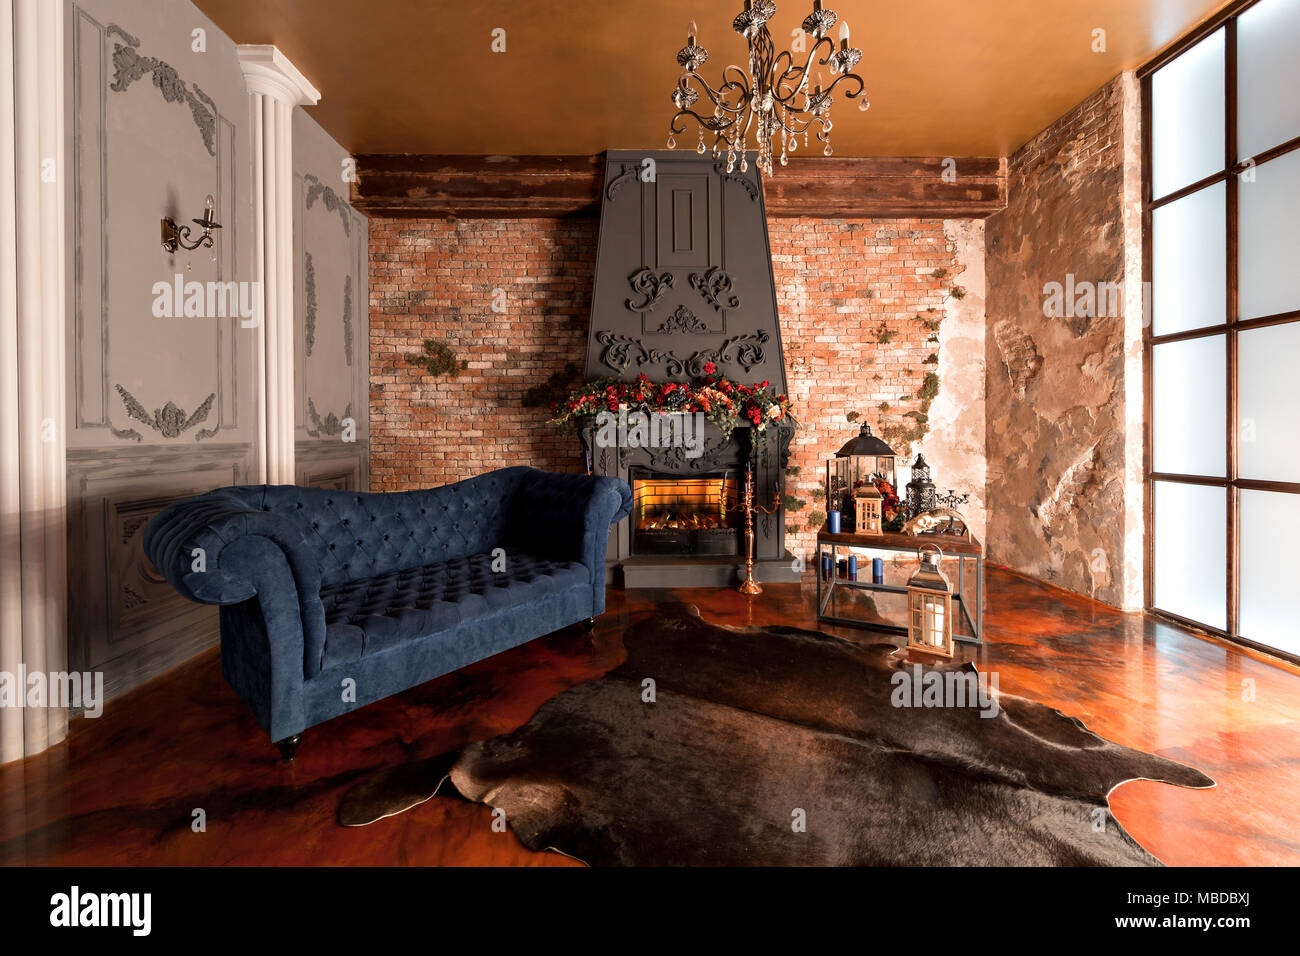 Good Interior With Fireplace, Candles, Skin Of Cows, Brick Wall, Large Window  And A Living Room, Coffee Table And Dark Blue Sofa In Modern Design.